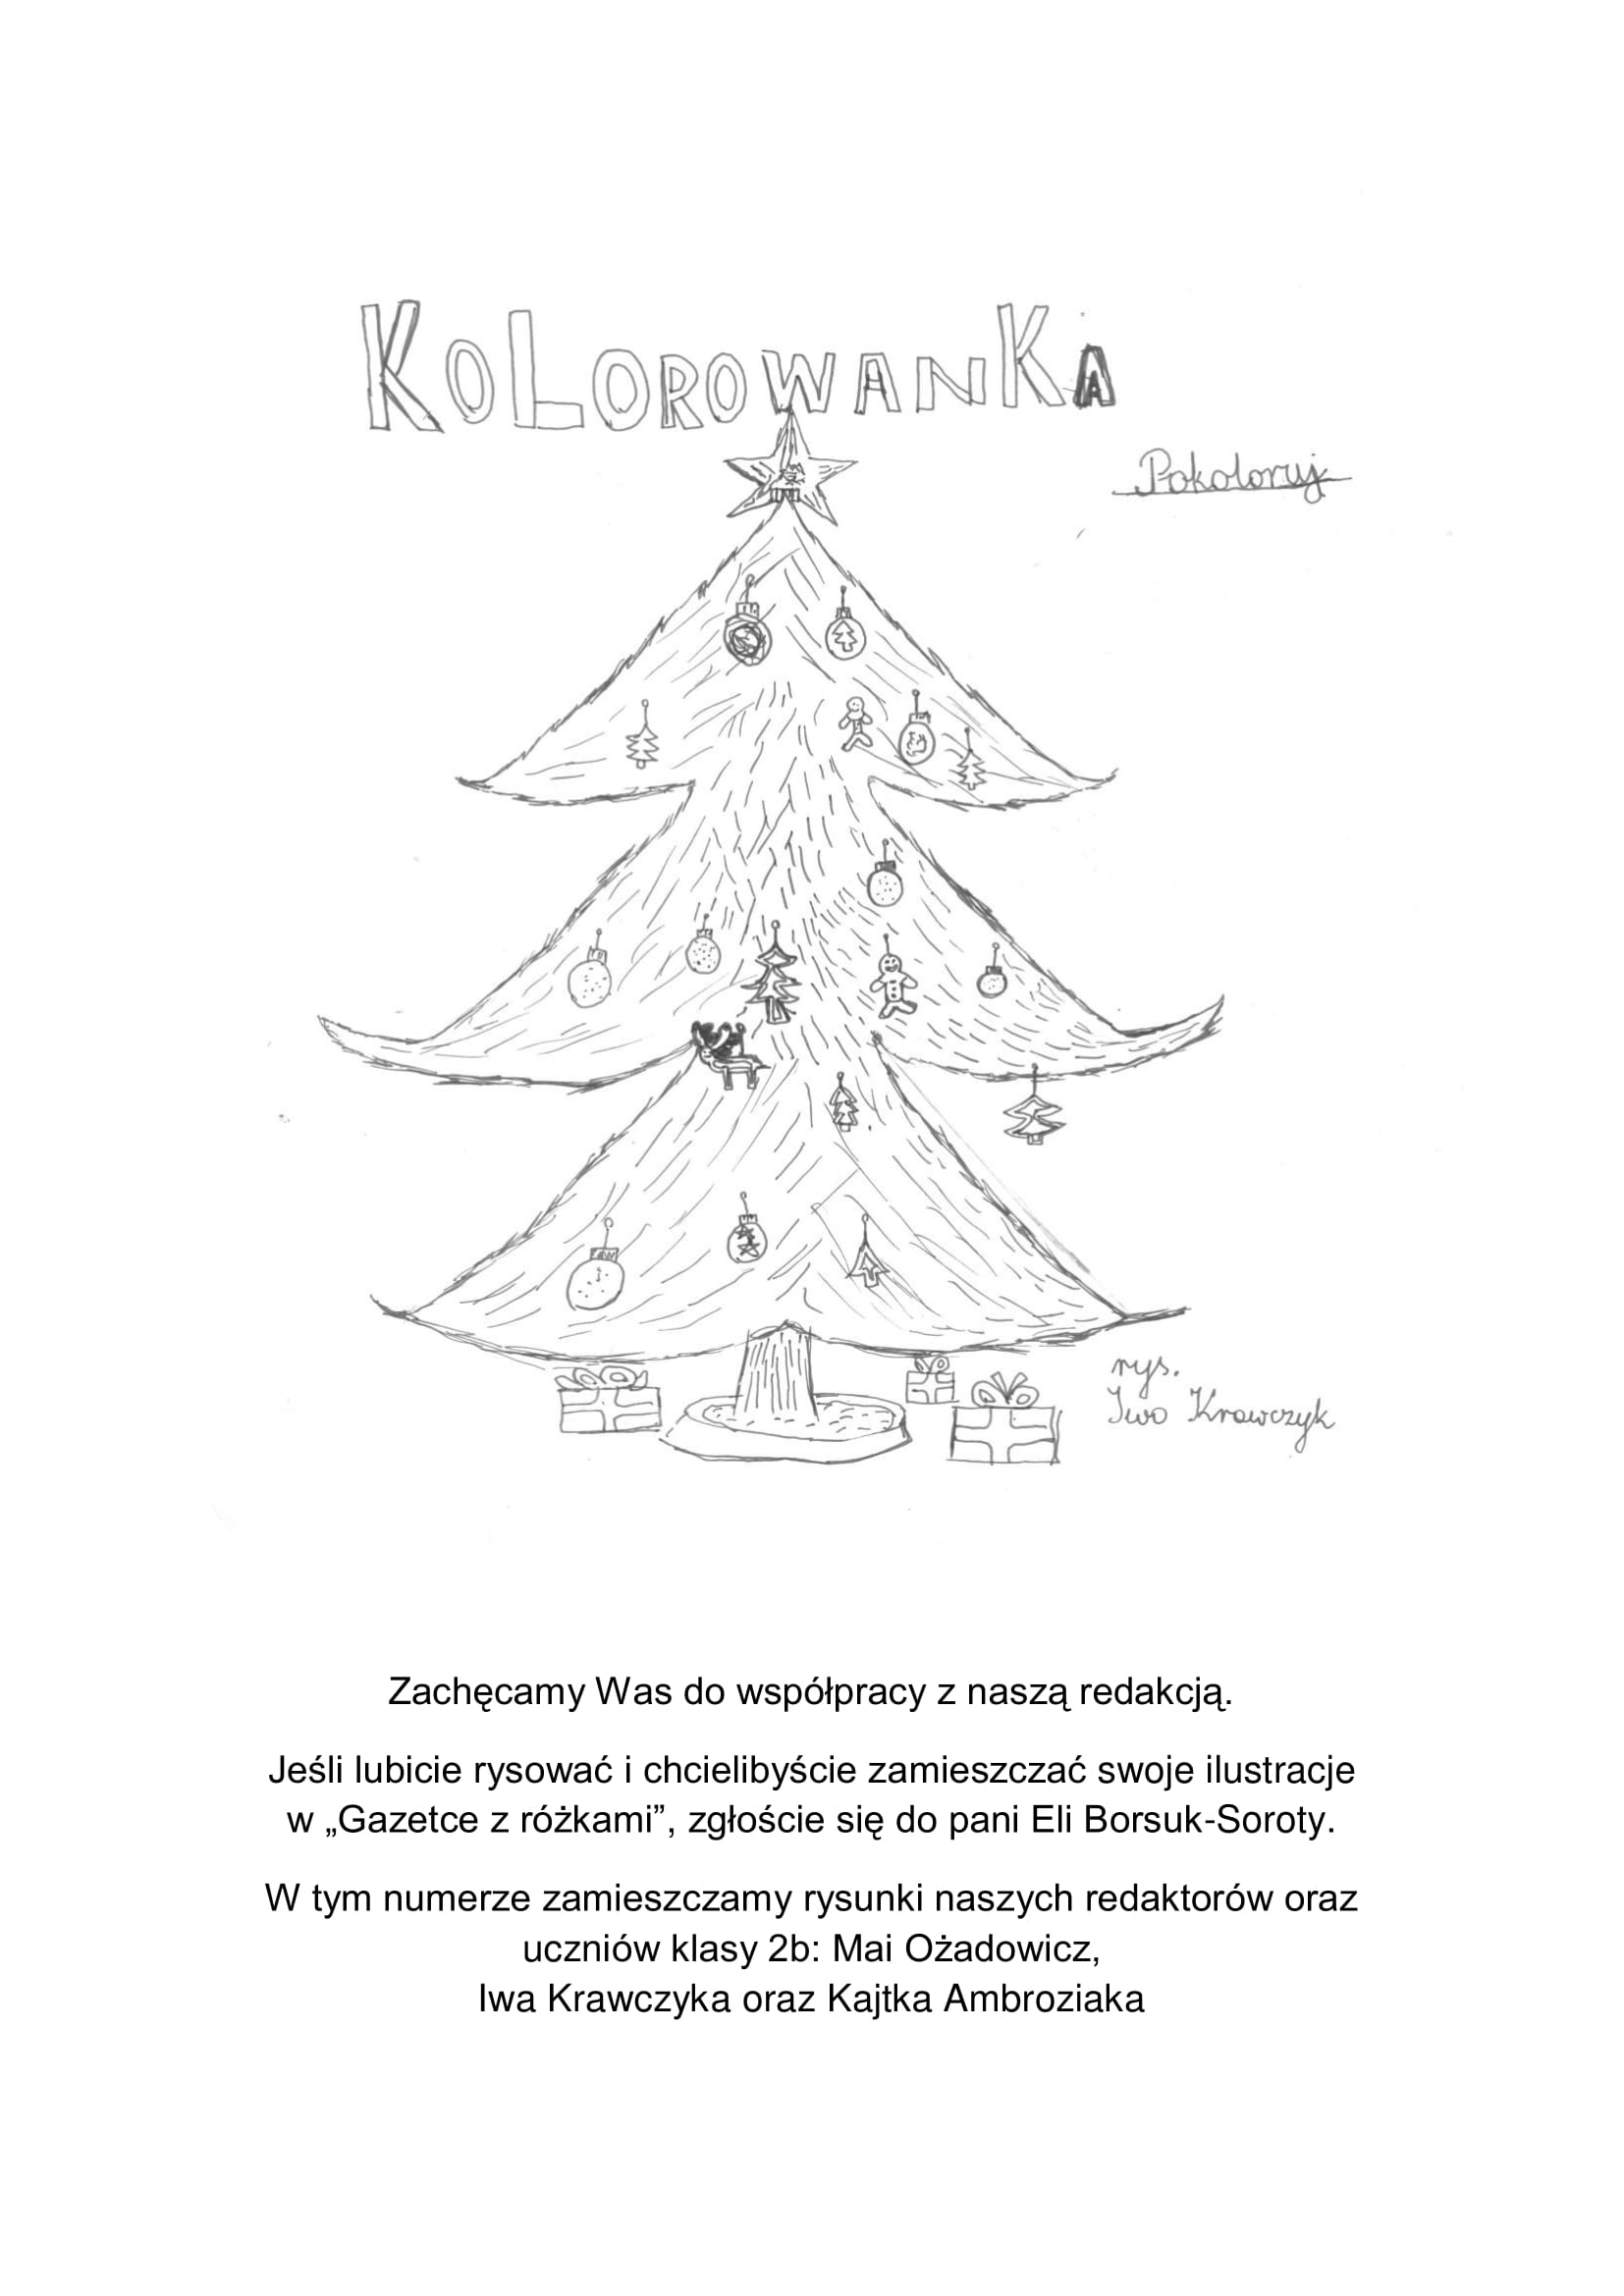 http://sp24sto.edu.pl/wp-content/uploads/sites/3/2018/02/GAZETKA-Z-RÓŻKAMI-grudzień-2017-nr-9-09.jpg